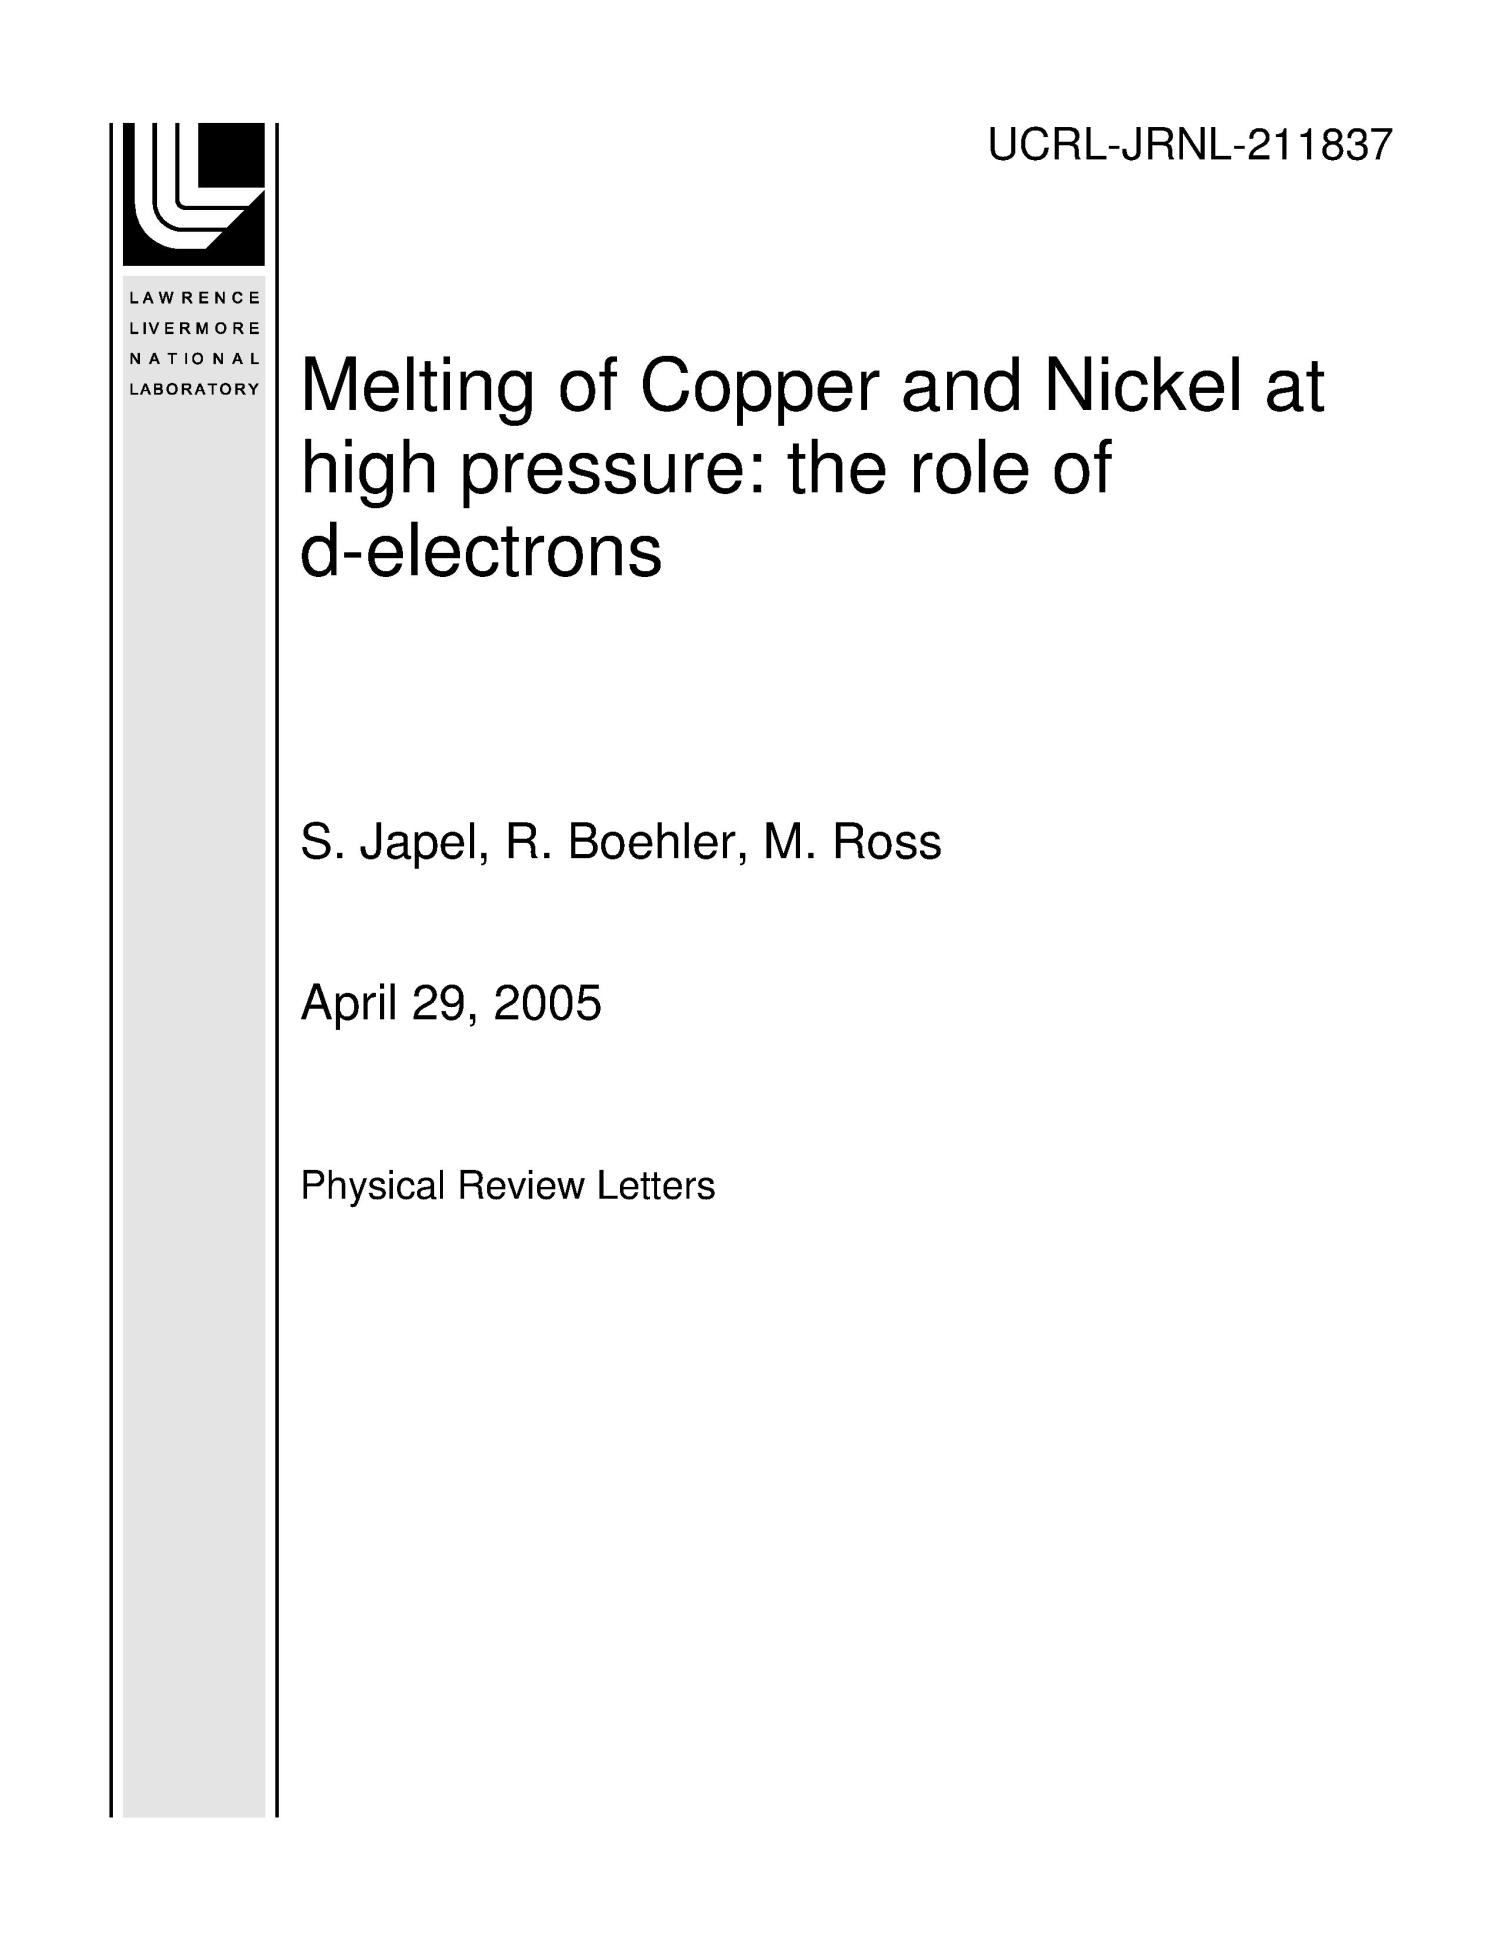 Melting of Copper and Nickel at high pressure: the role of d-electrons                                                                                                      [Sequence #]: 1 of 16